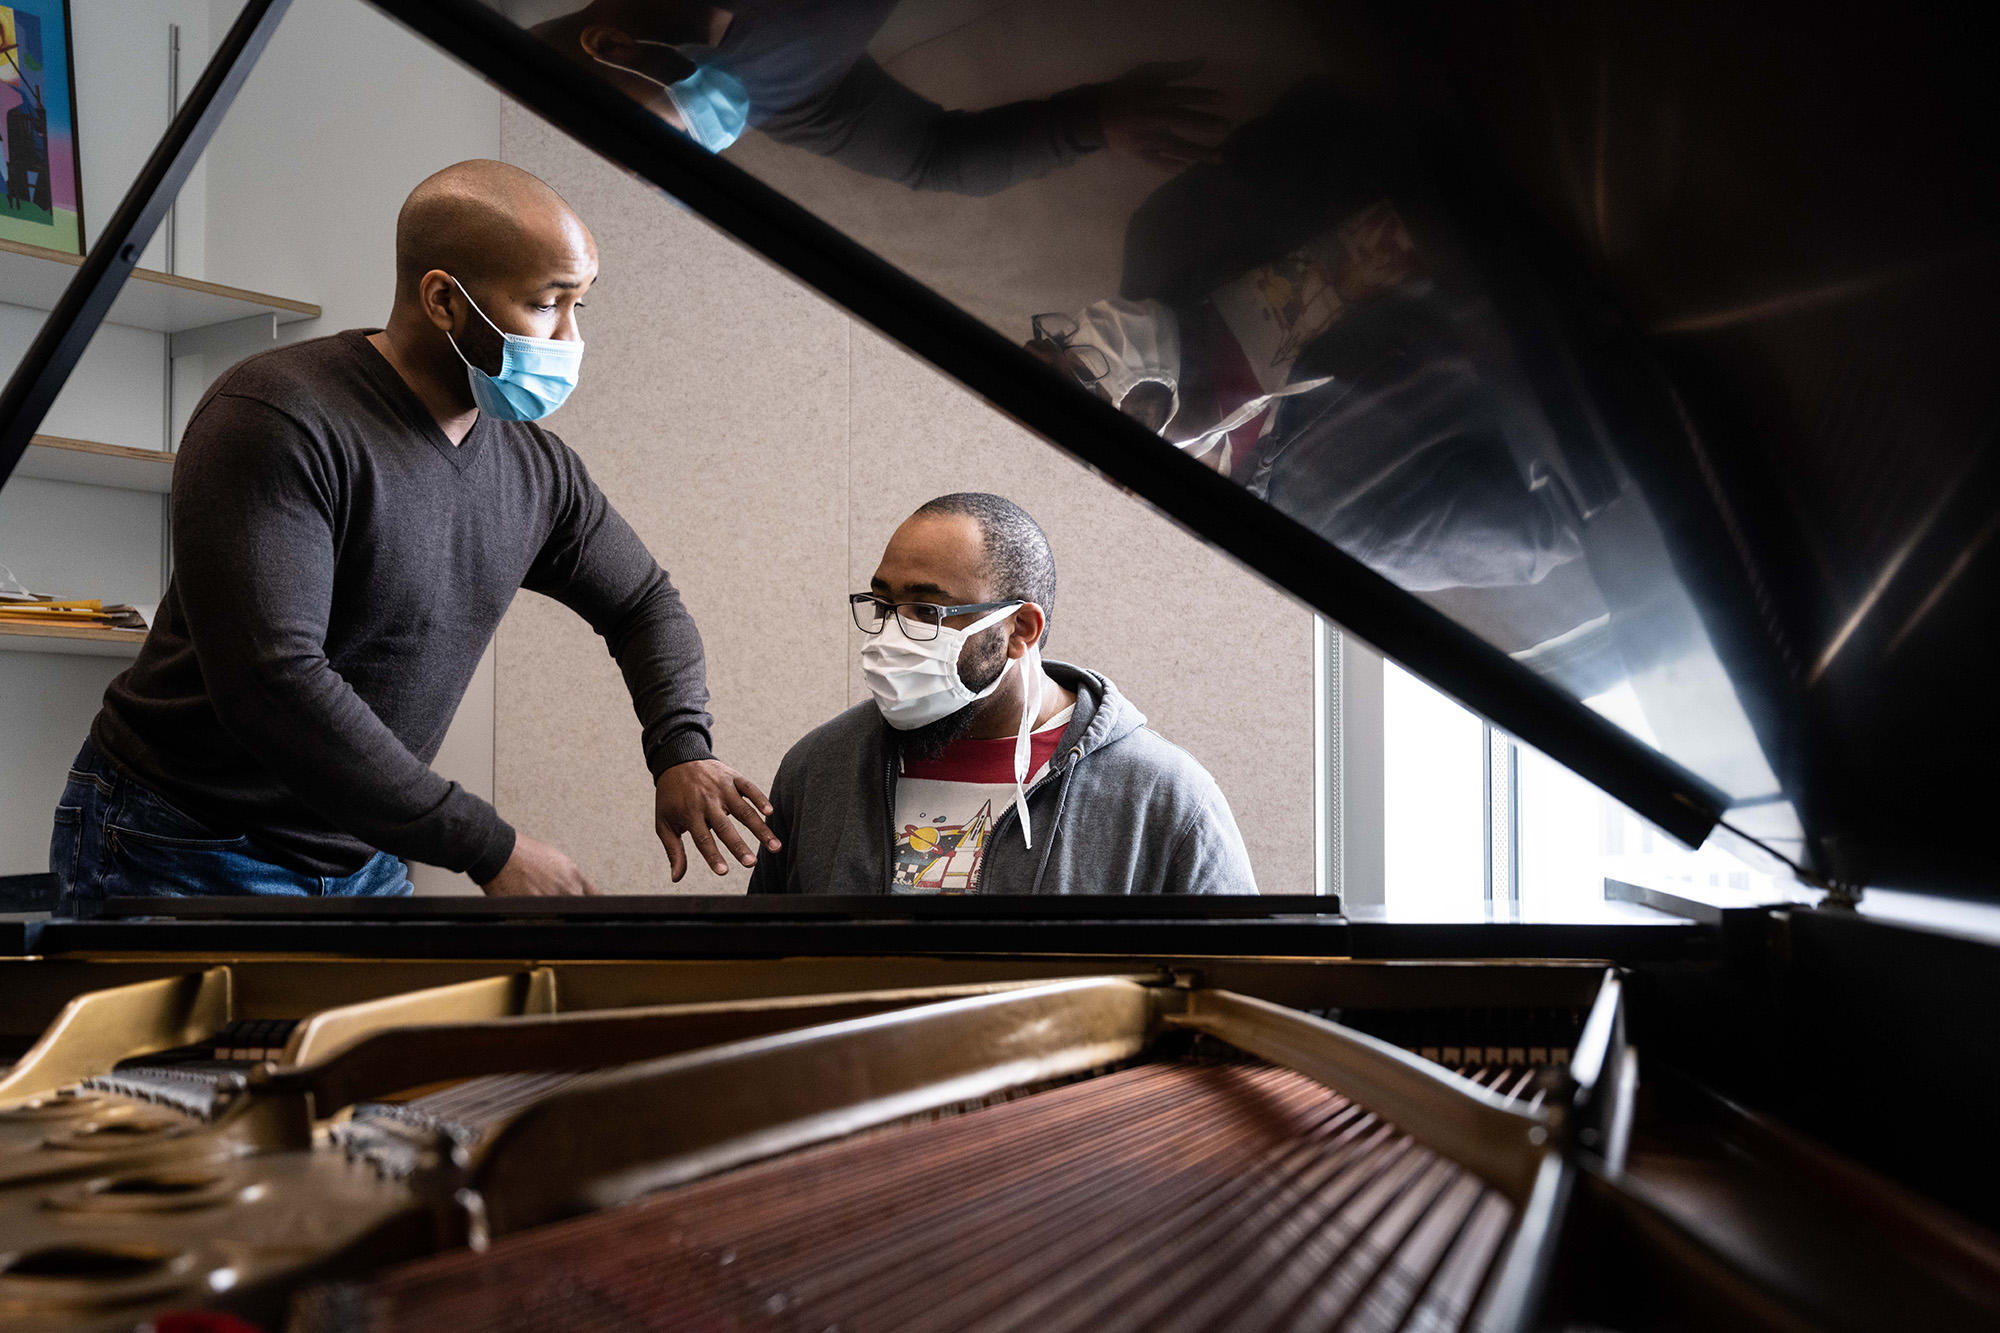 University of Iowa jazz studies faculty member William Menefield works with a student at a piano